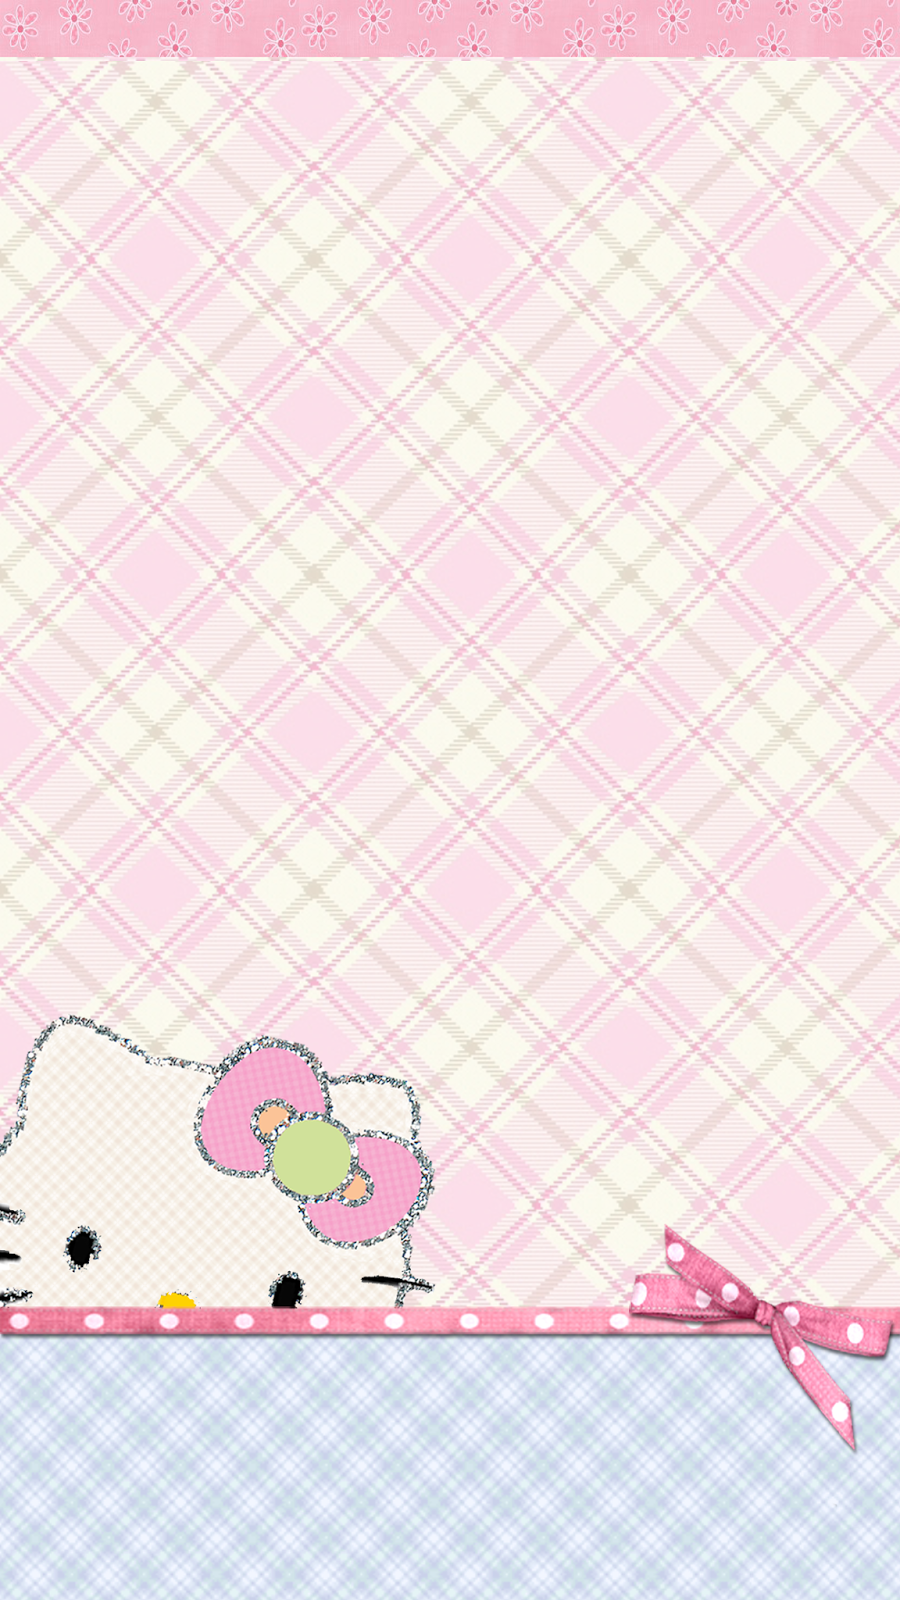 Must see Wallpaper Hello Kitty Iphone 5 - 237aa4a21303a2144ab31ffb4b2c9707  Perfect Image Reference_561785.png